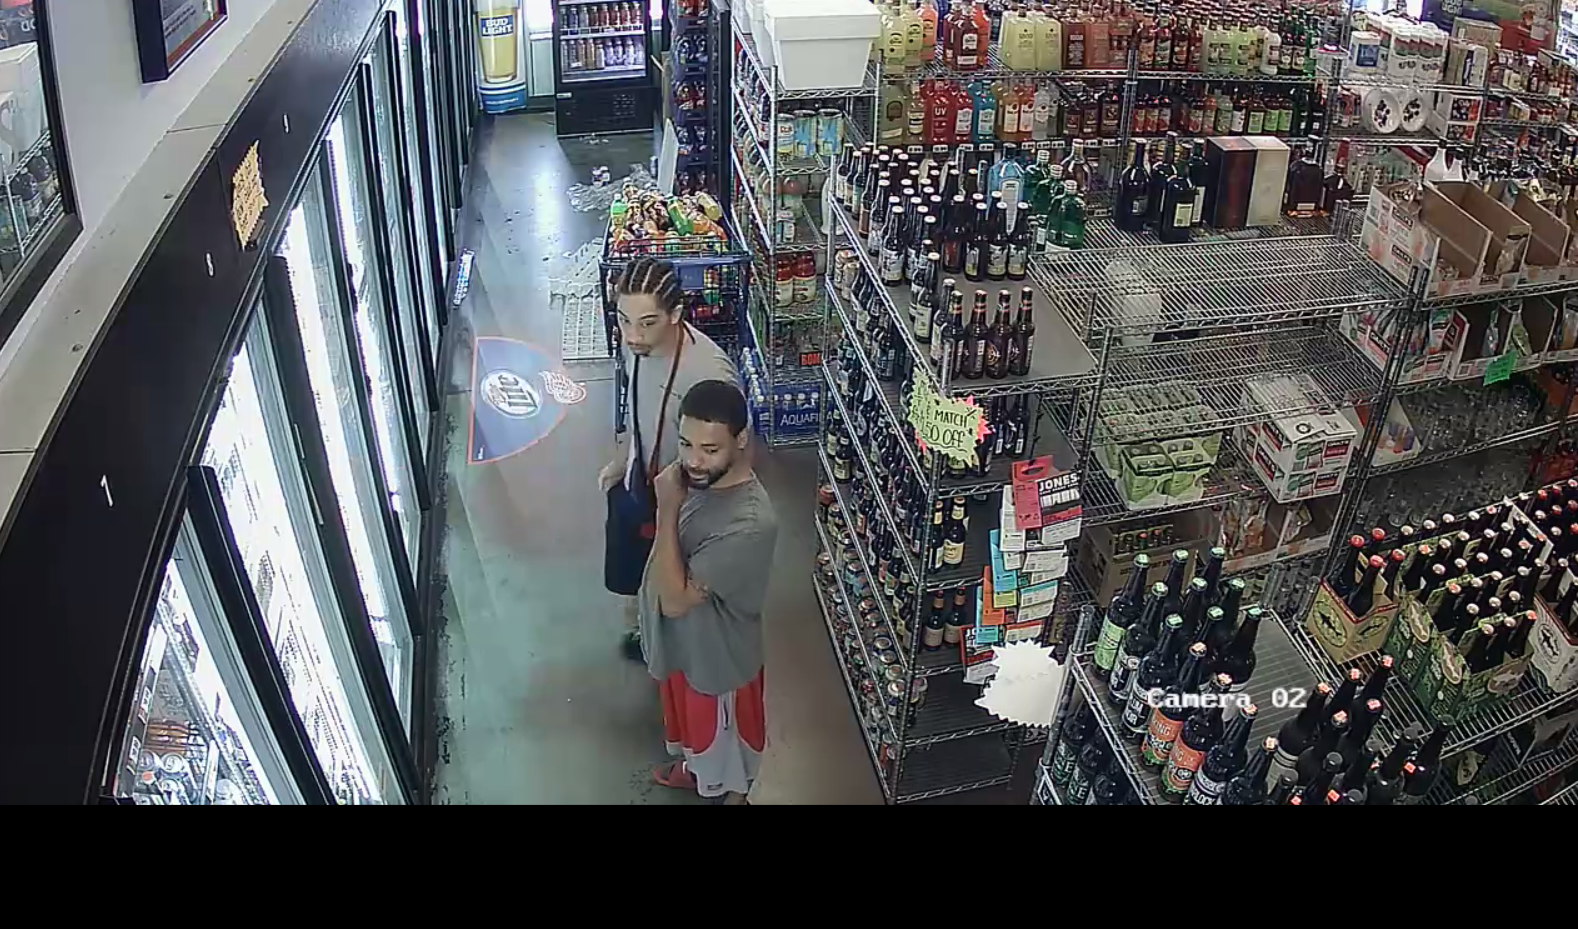 Surveillance photos released after larceny at liquor store (Courtesy: Isabella County Sheriff's Office)